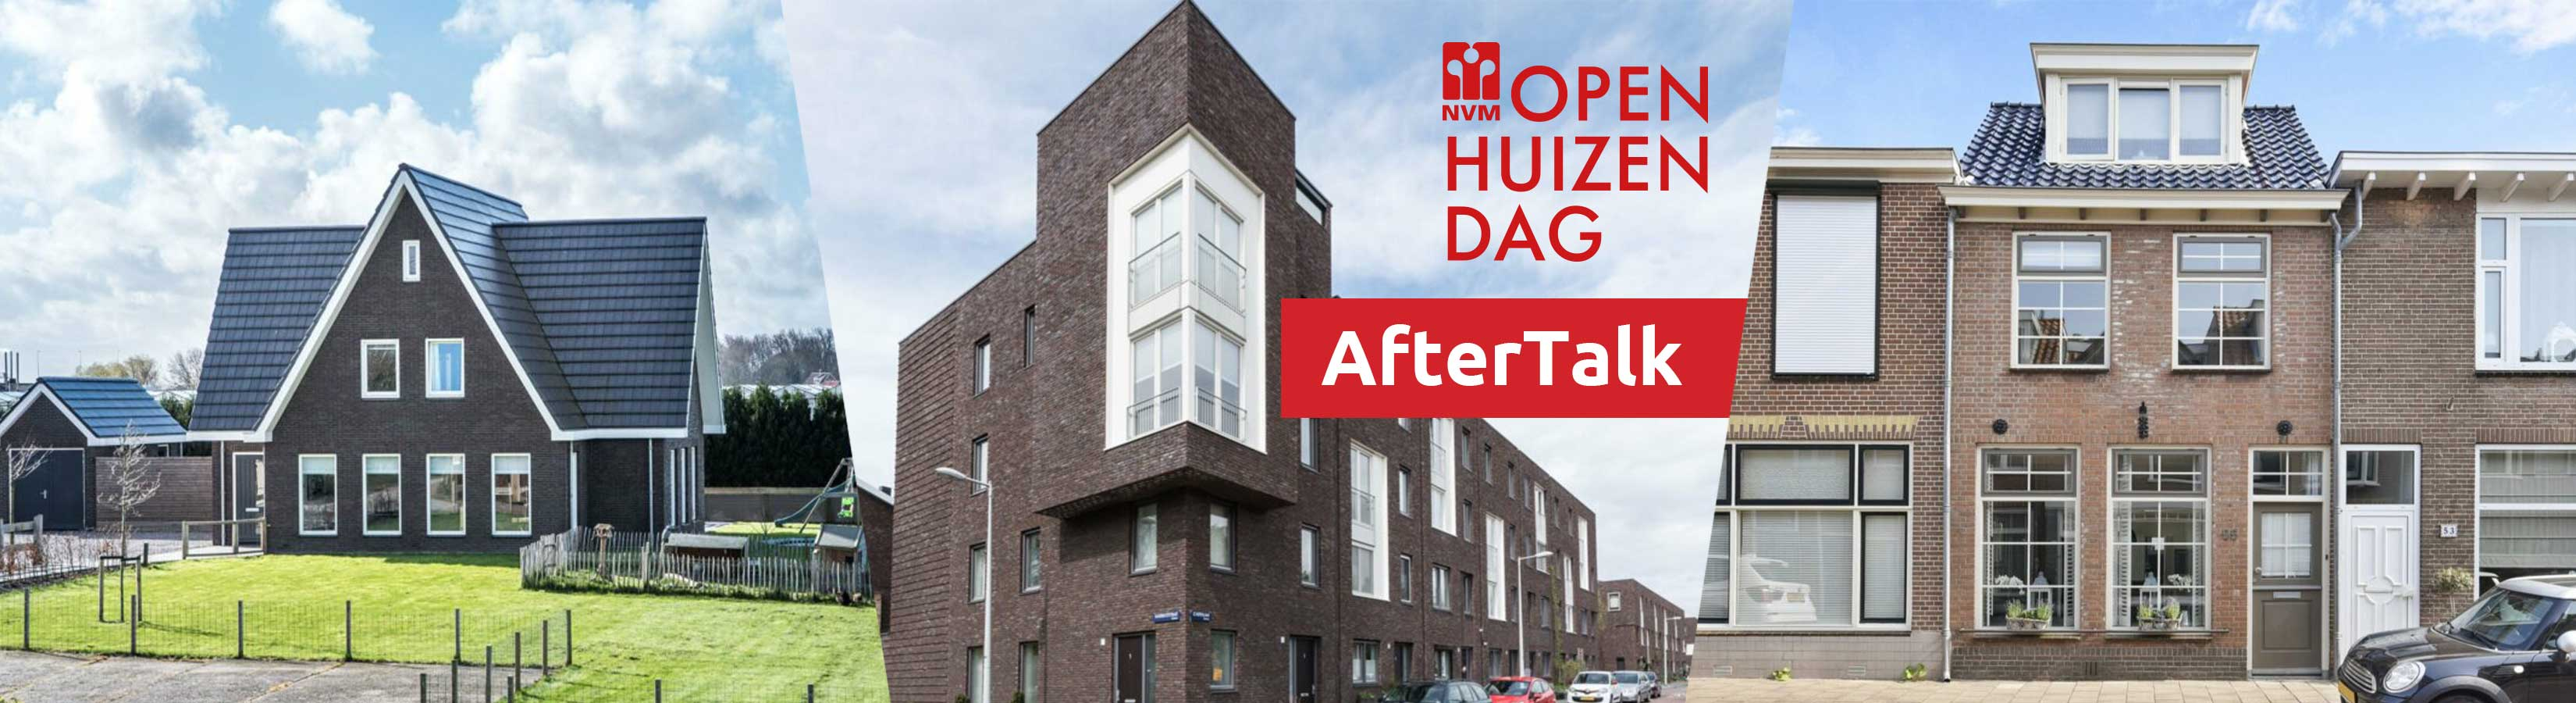 Open-Huizen-Dag-After-Talk-Header